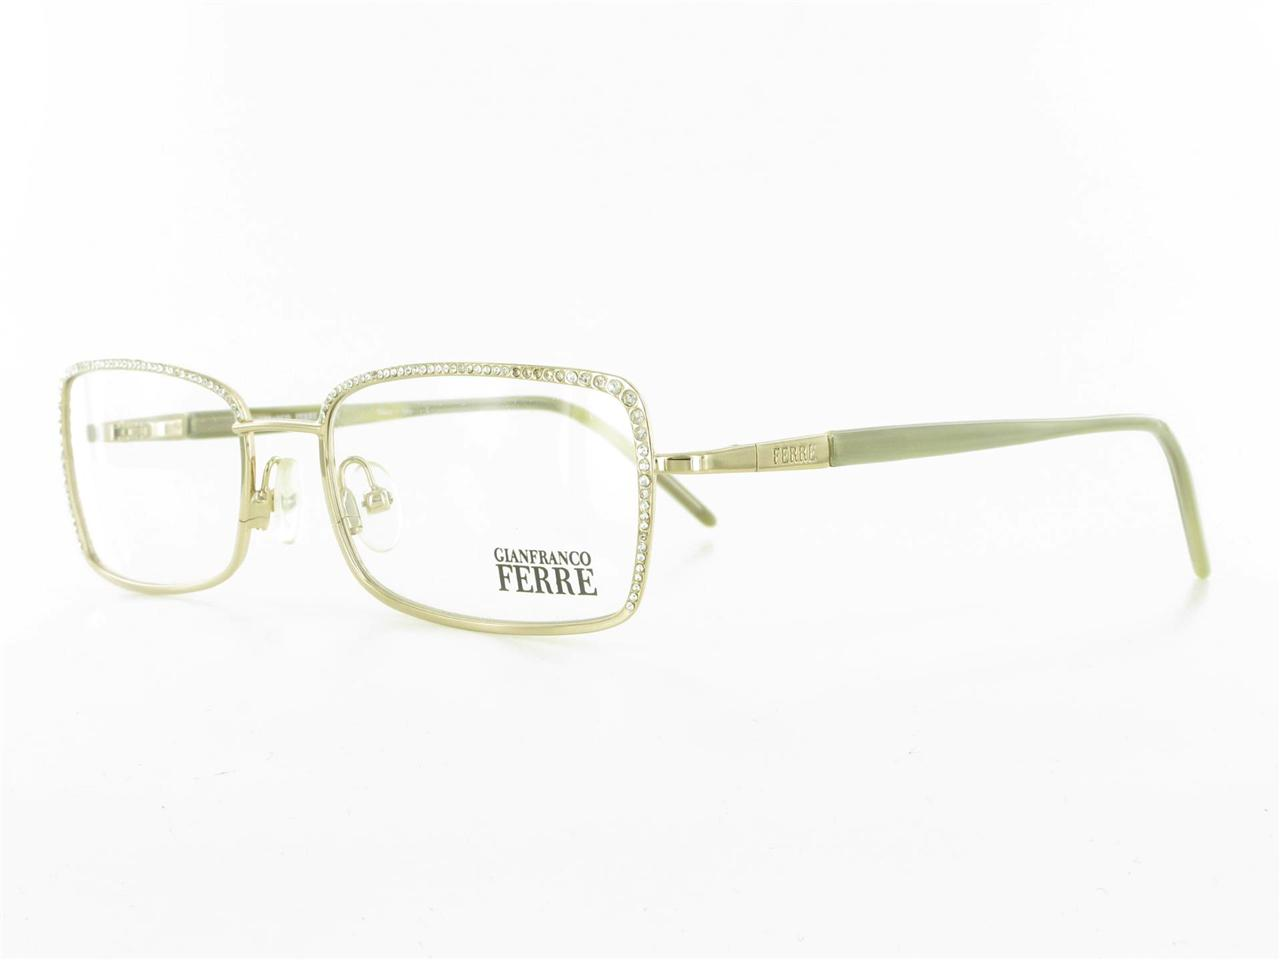 Eyeglasses Frames With Bling : BLING GFF Ferre EYEGLASS FRAME Rhinestone Gold Womens ...